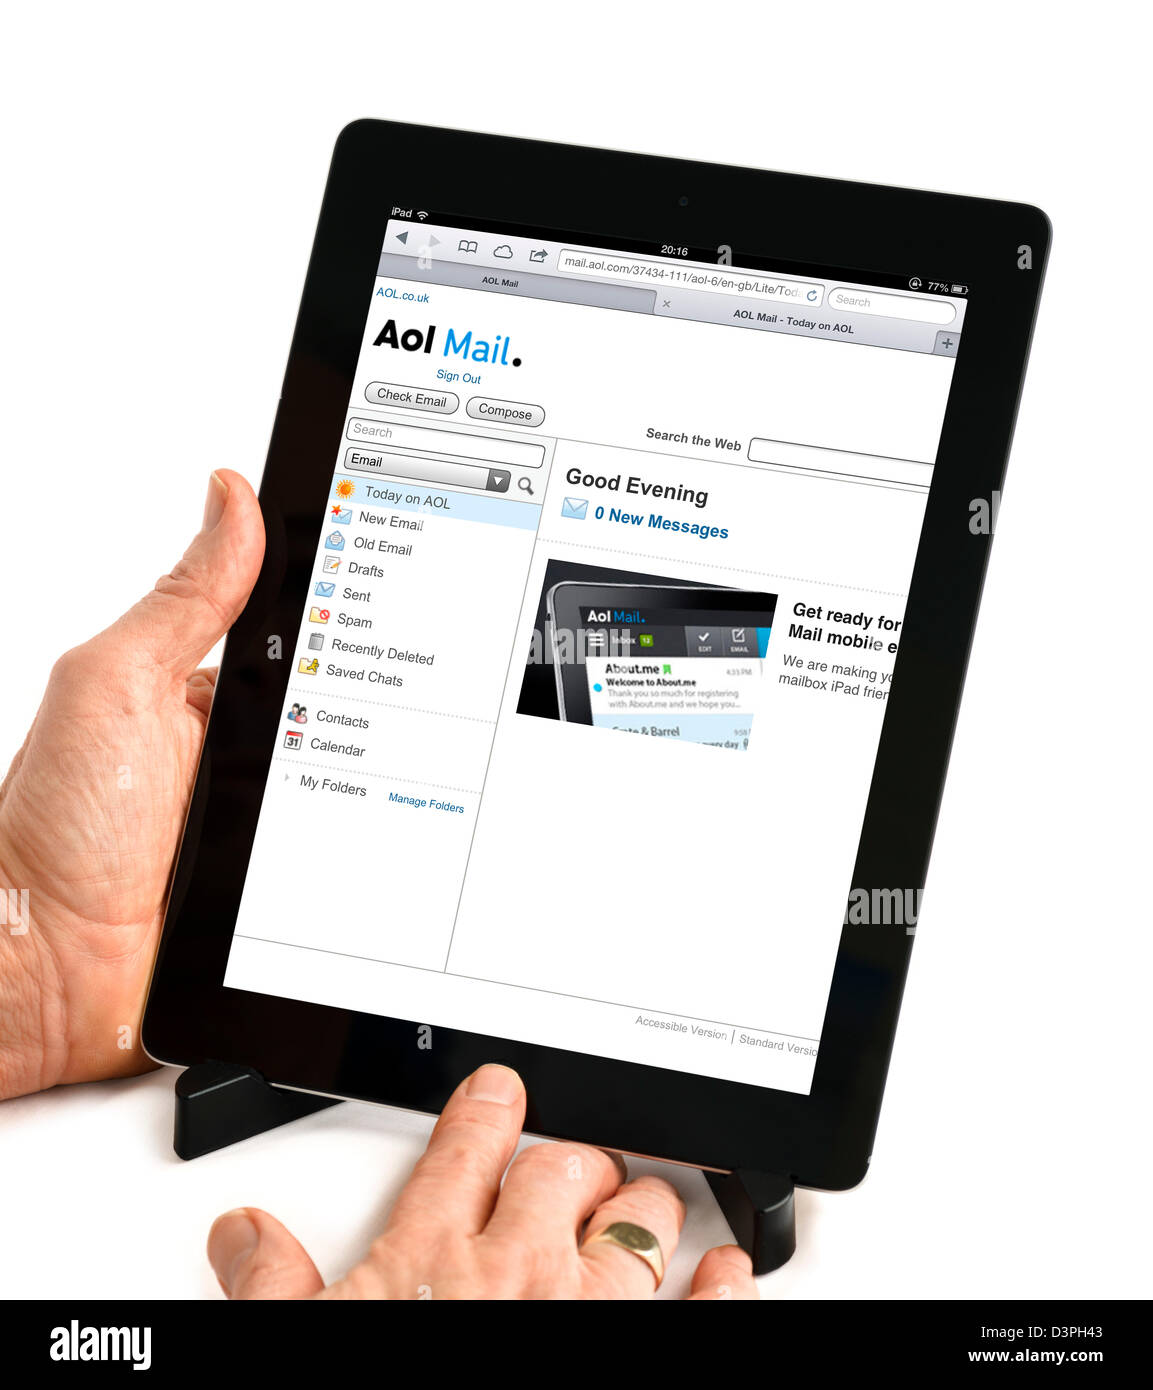 AOL email account viewed on a 4th generation iPad, UK - Stock Image